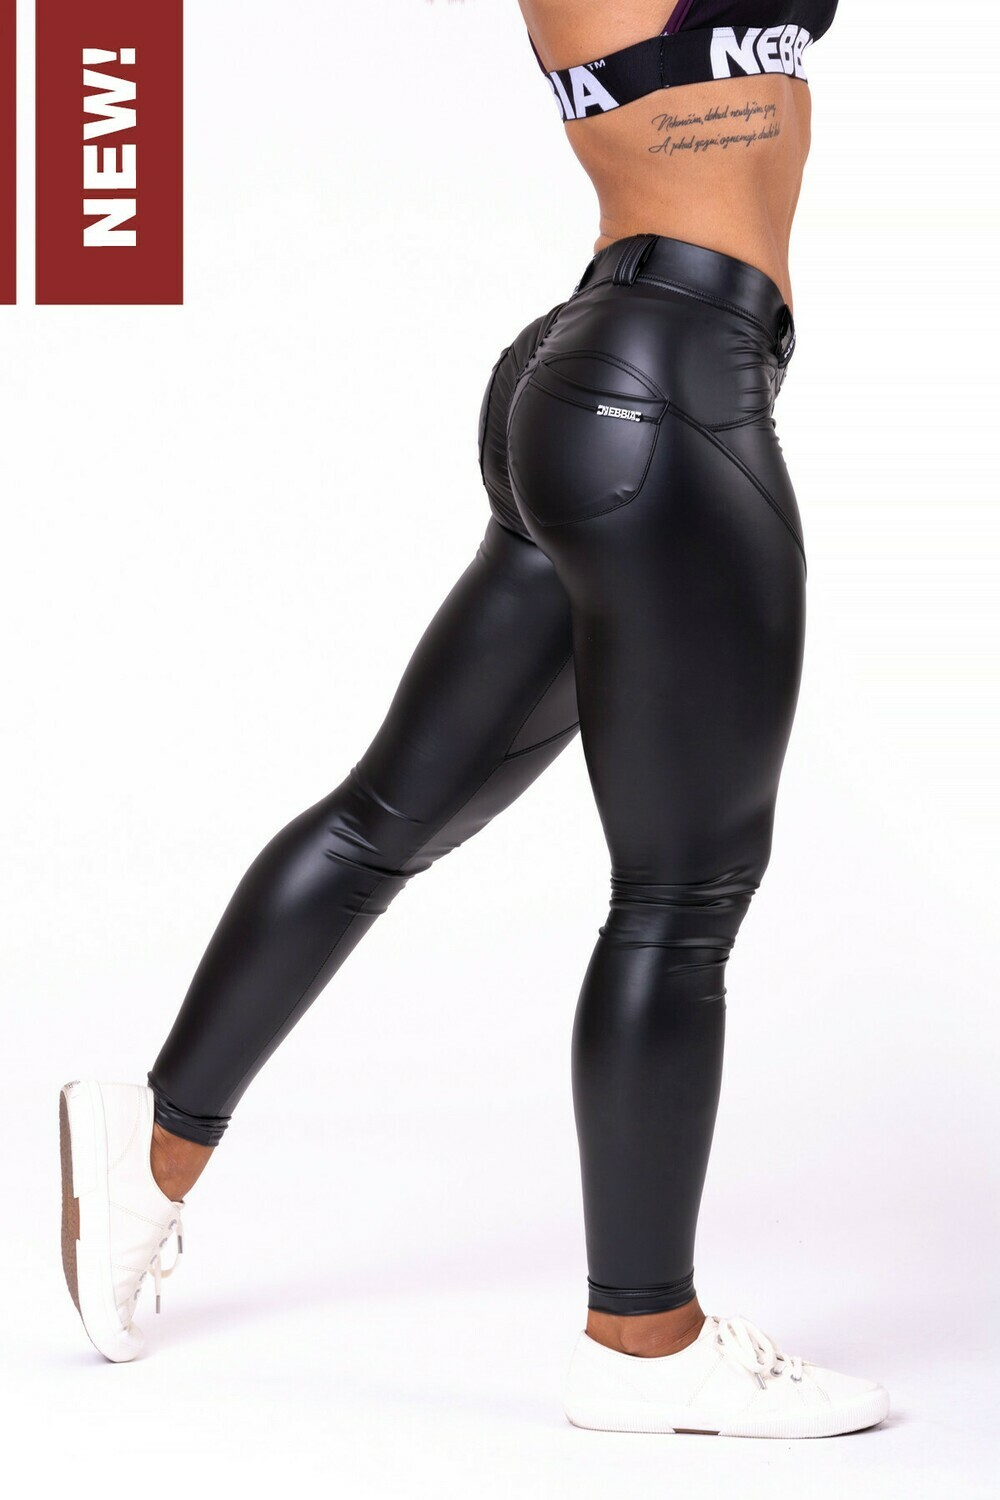 "БРЮКИ NEBBIA BUBBLE BUTT PANTS ""CAT WOMAN"" 669"